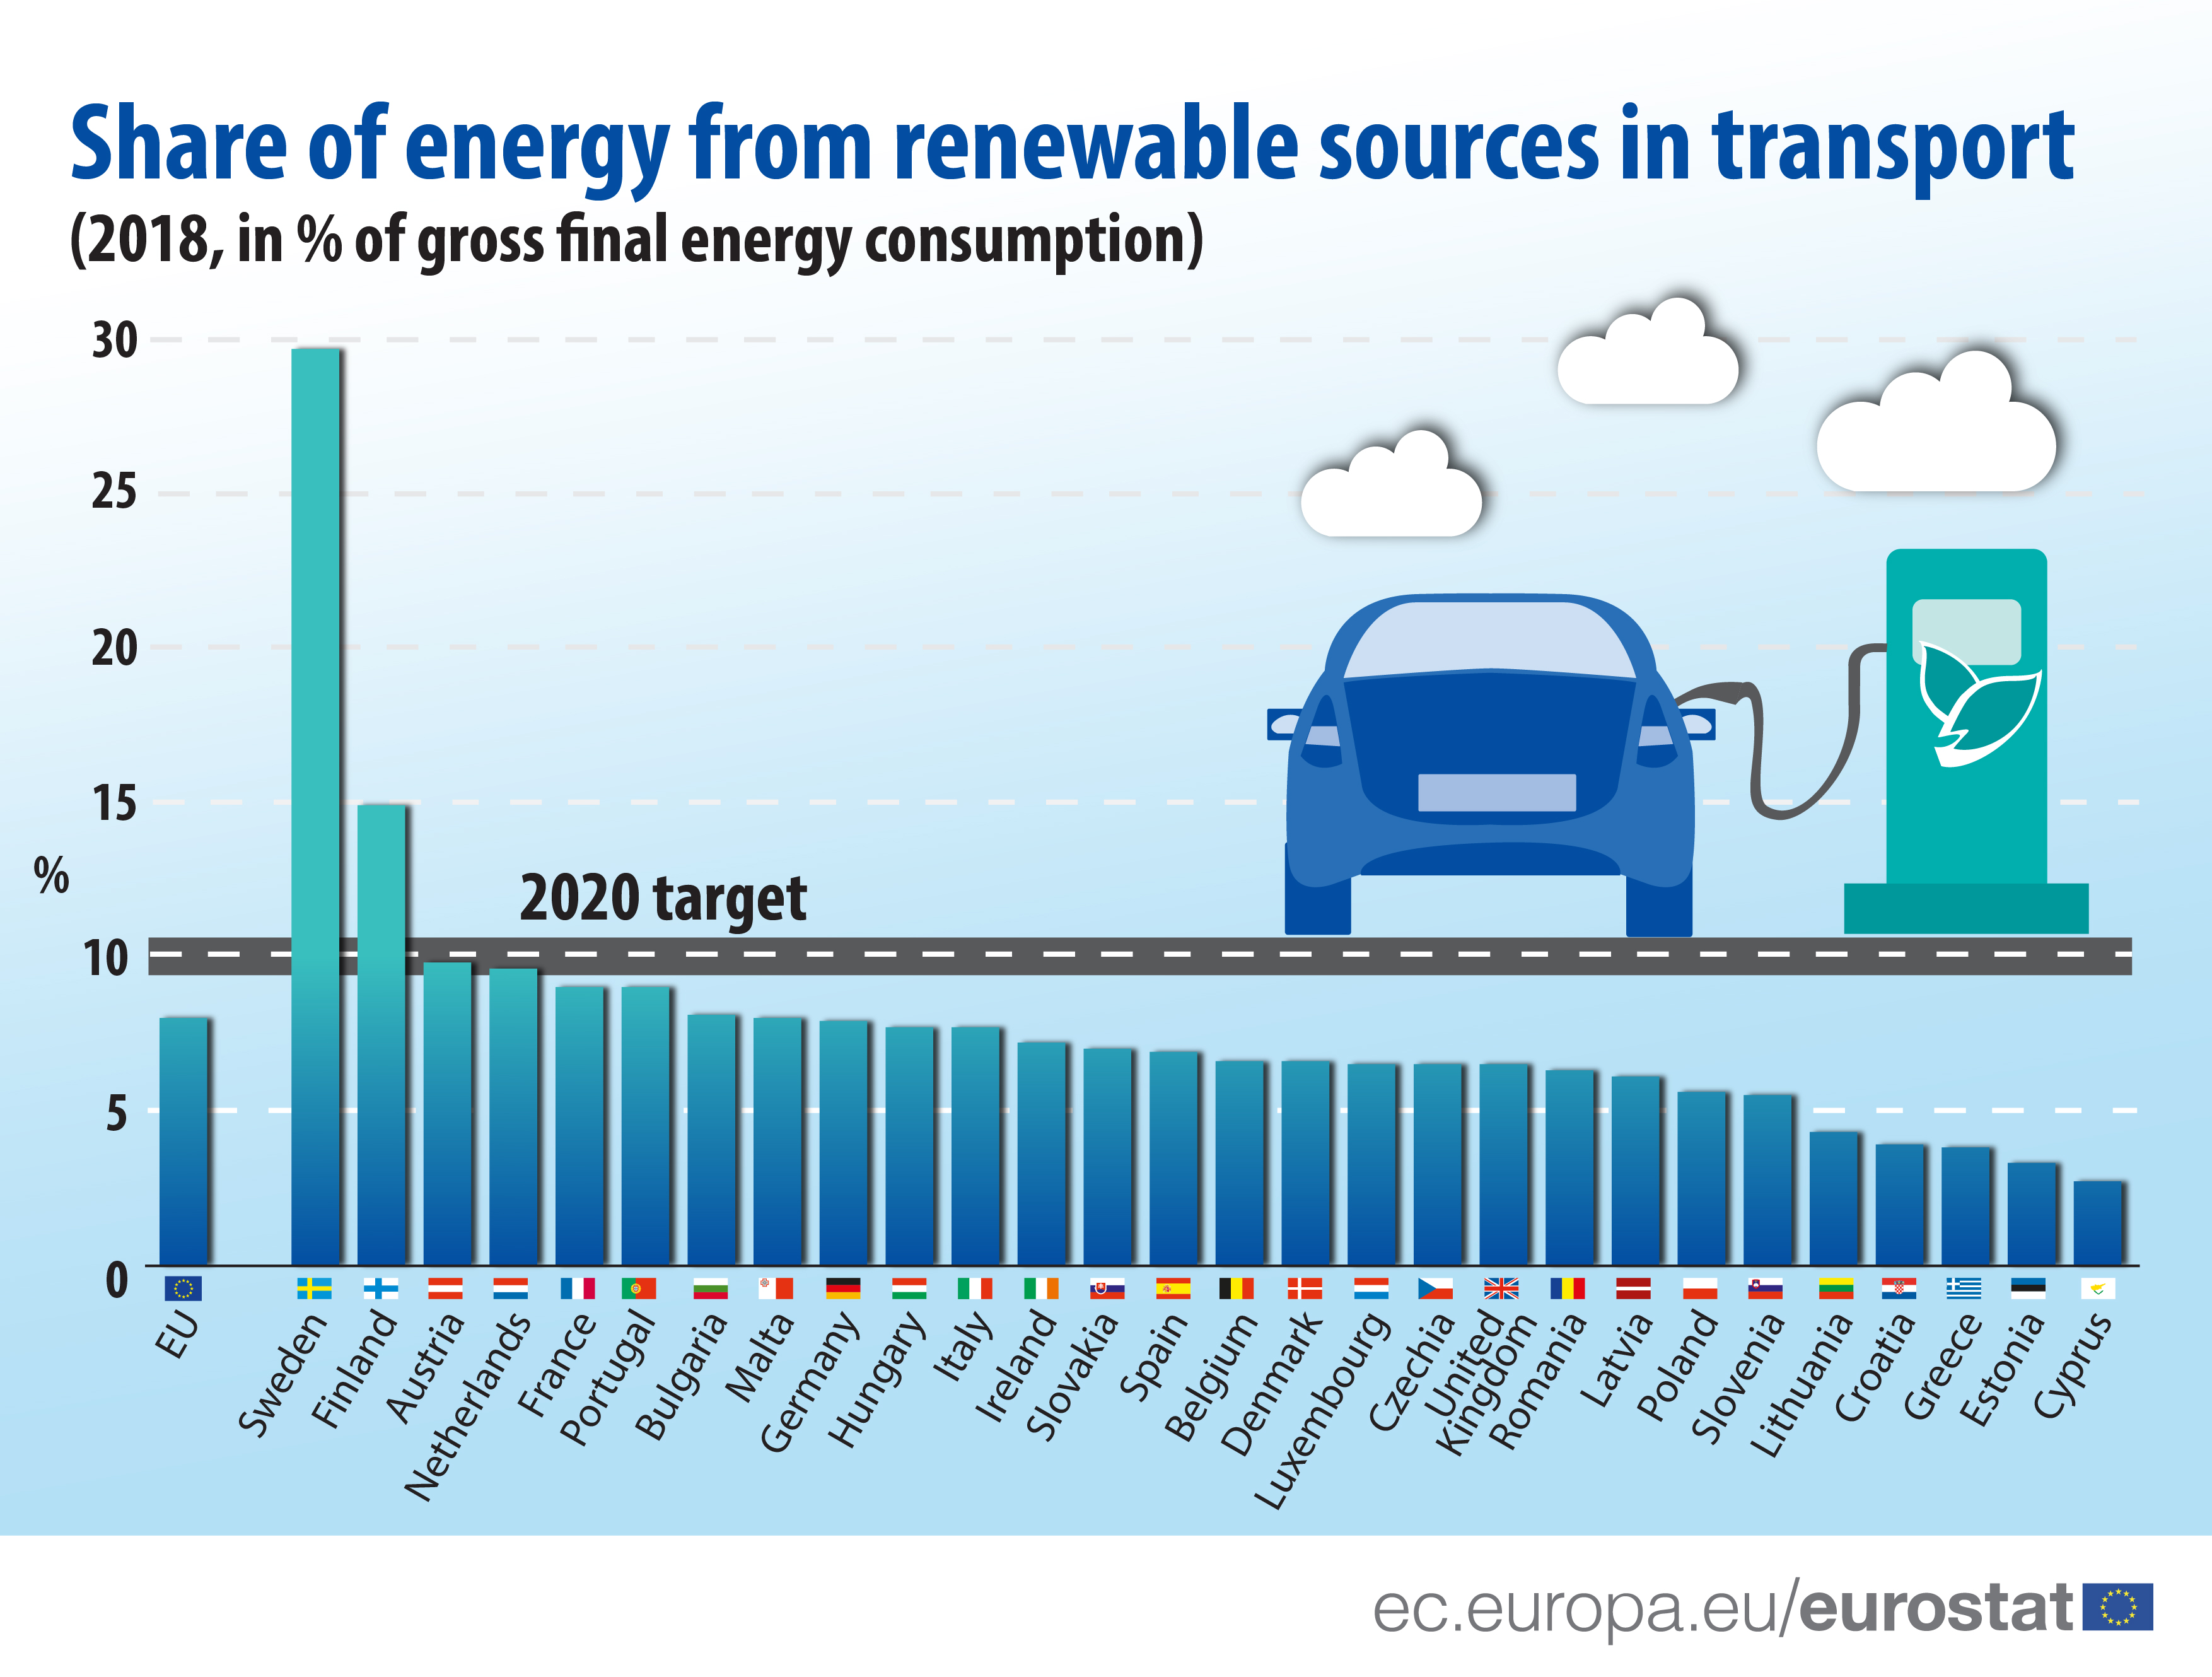 Share of energy from renewable sorces in transport